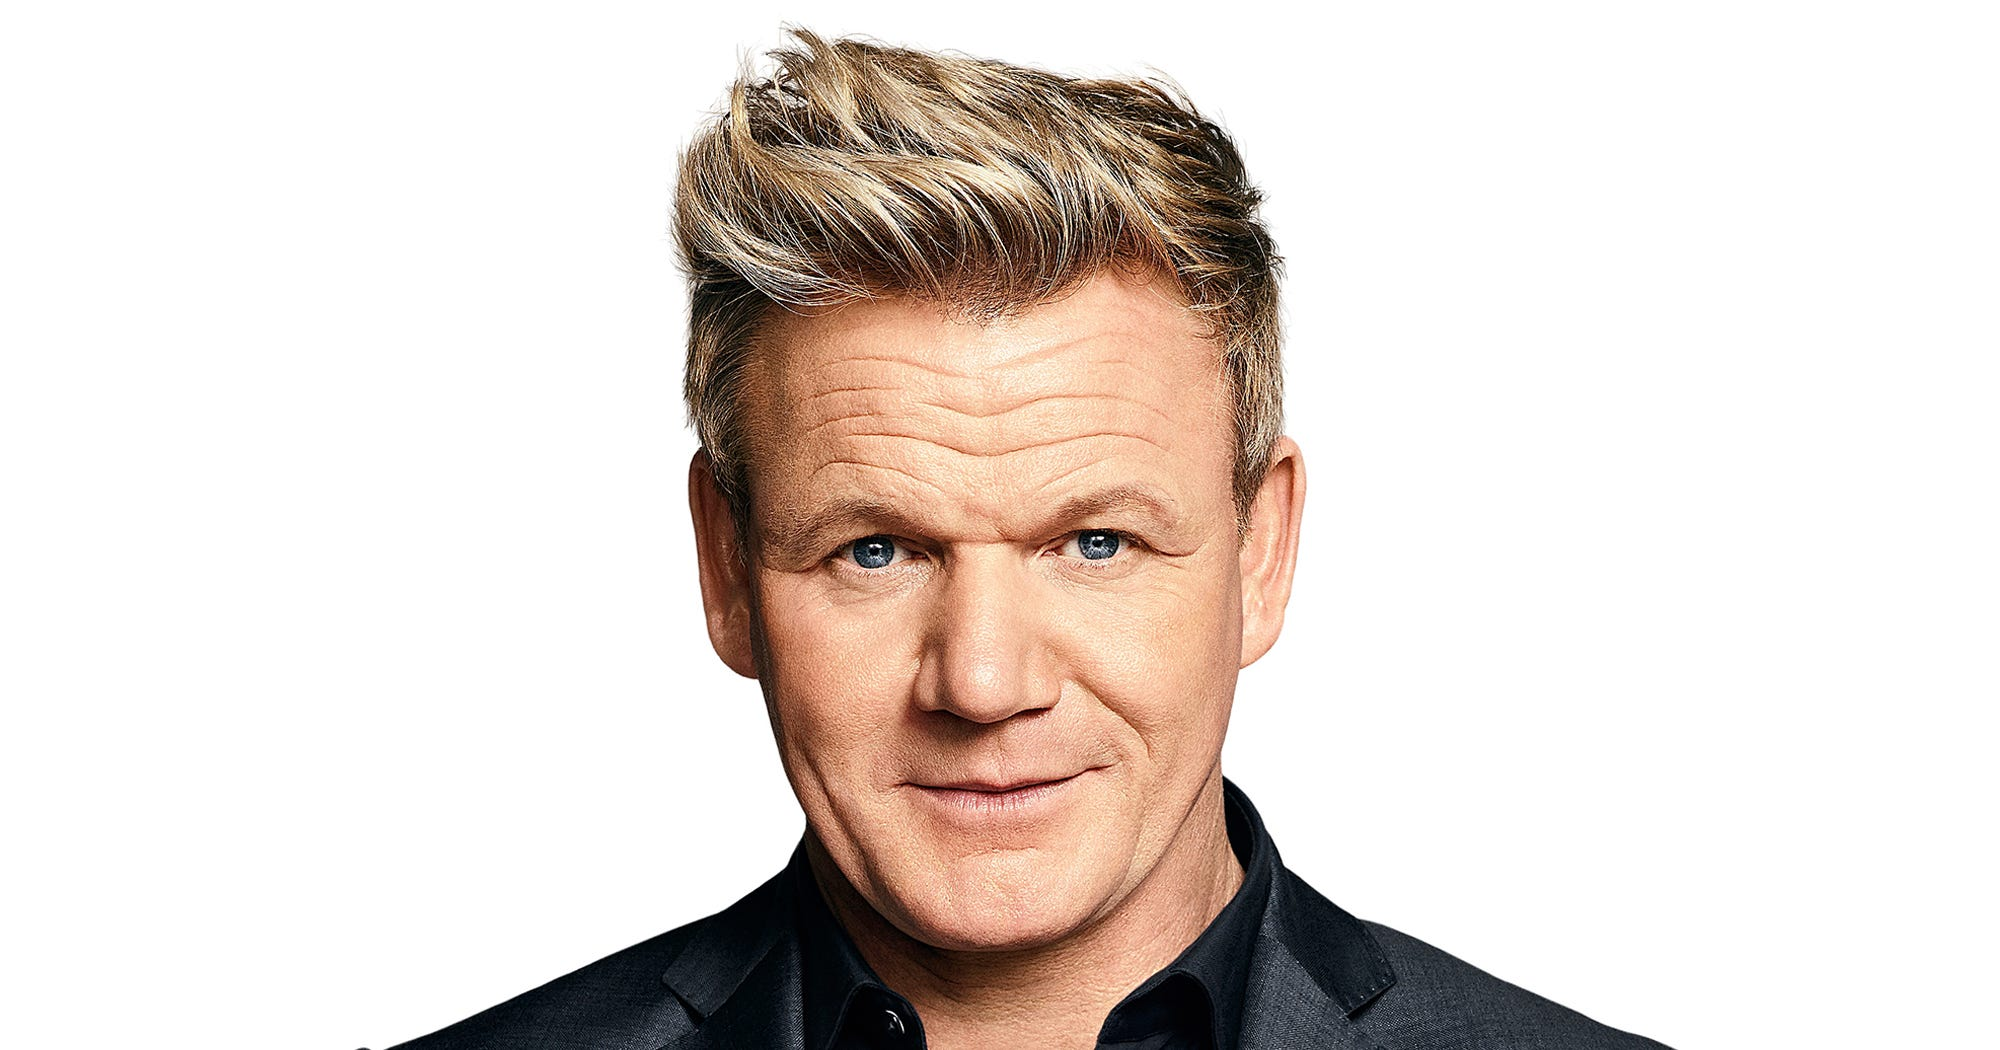 gordon ramsay pressure point tv chef cooking career. Black Bedroom Furniture Sets. Home Design Ideas